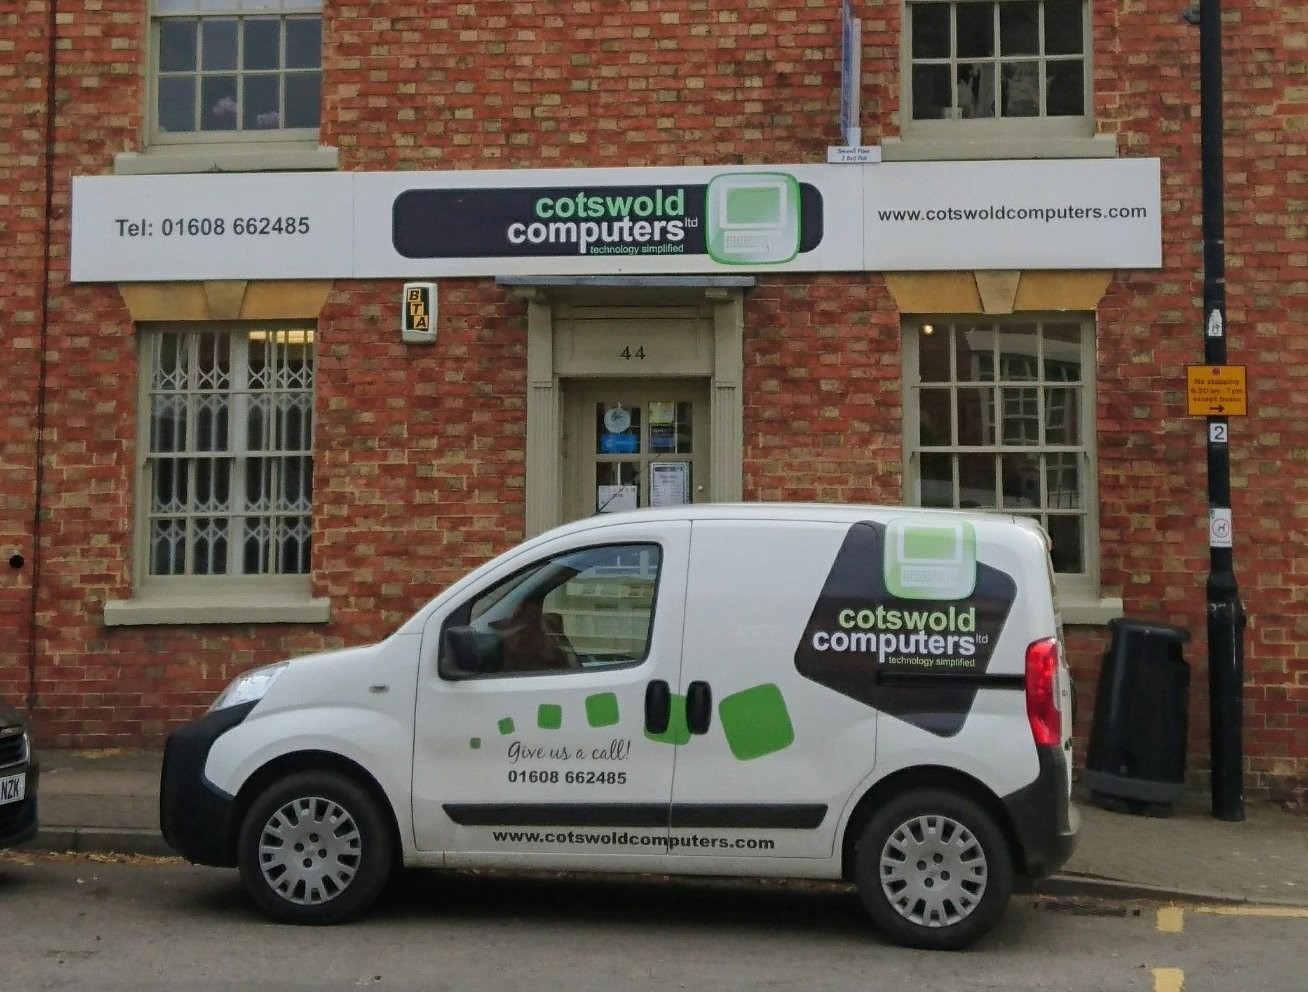 Cotswold Computers Ltd, Shipston on Stour